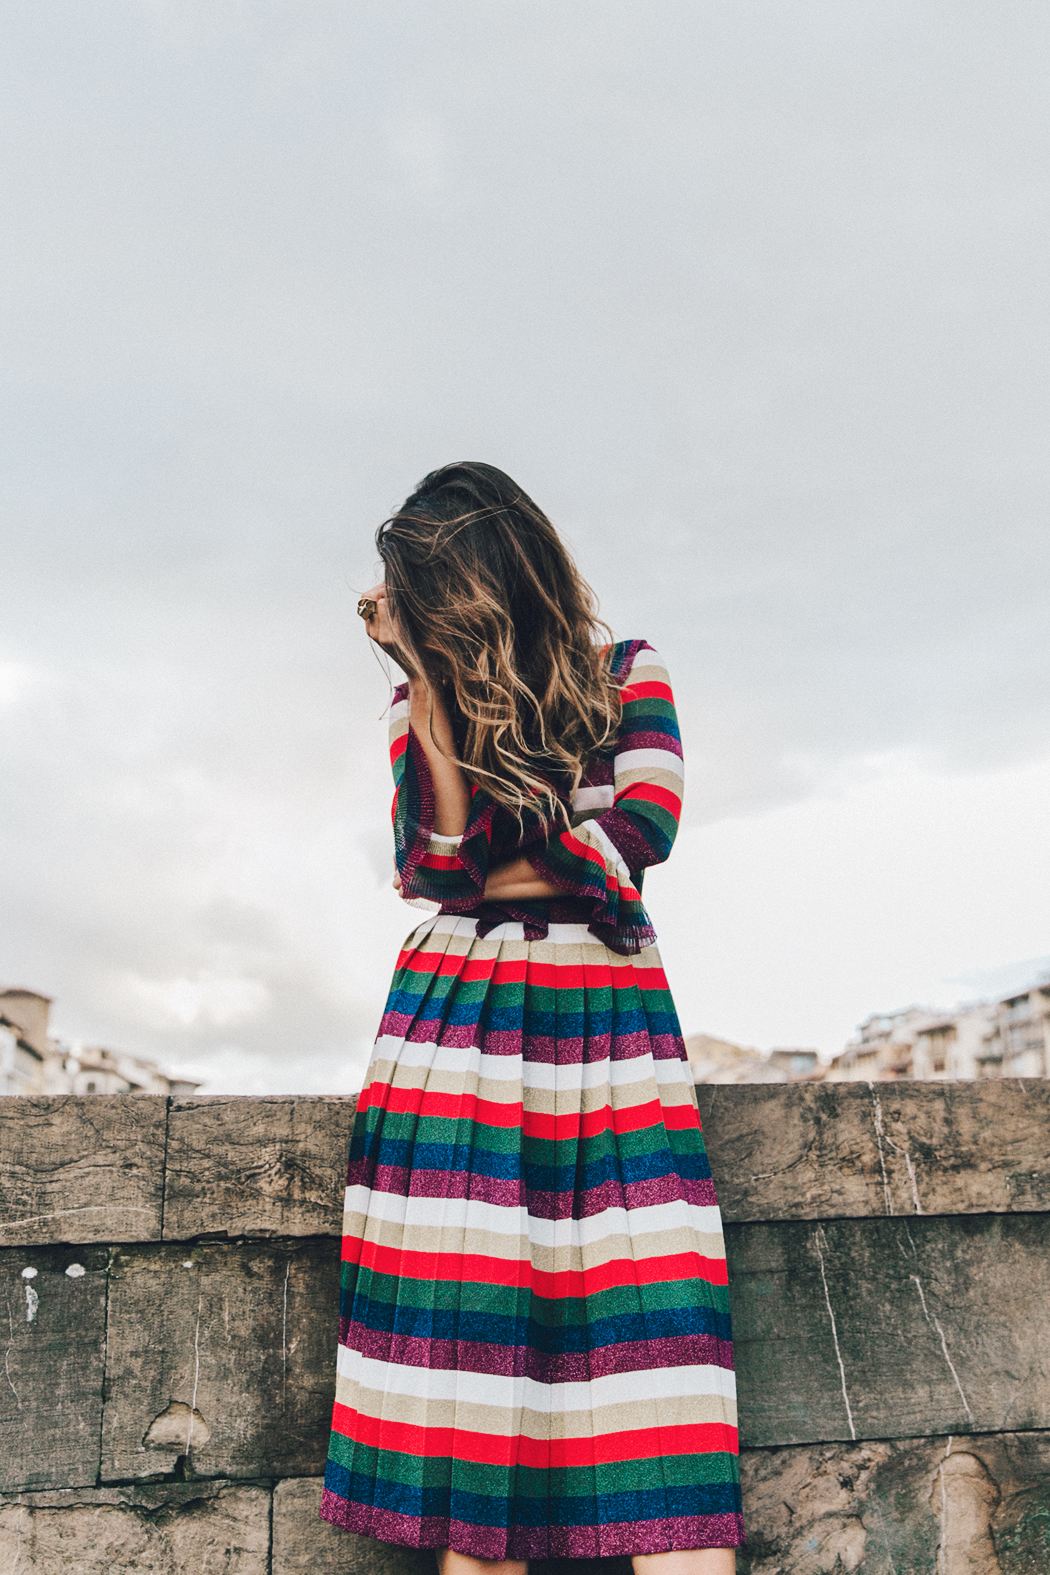 Firenze4Ever-Luisa_VIa_Roma-Gucci_Striped_Dress-Gucci_Gold_Sandals-Outfit-Florence-Street_Style-17